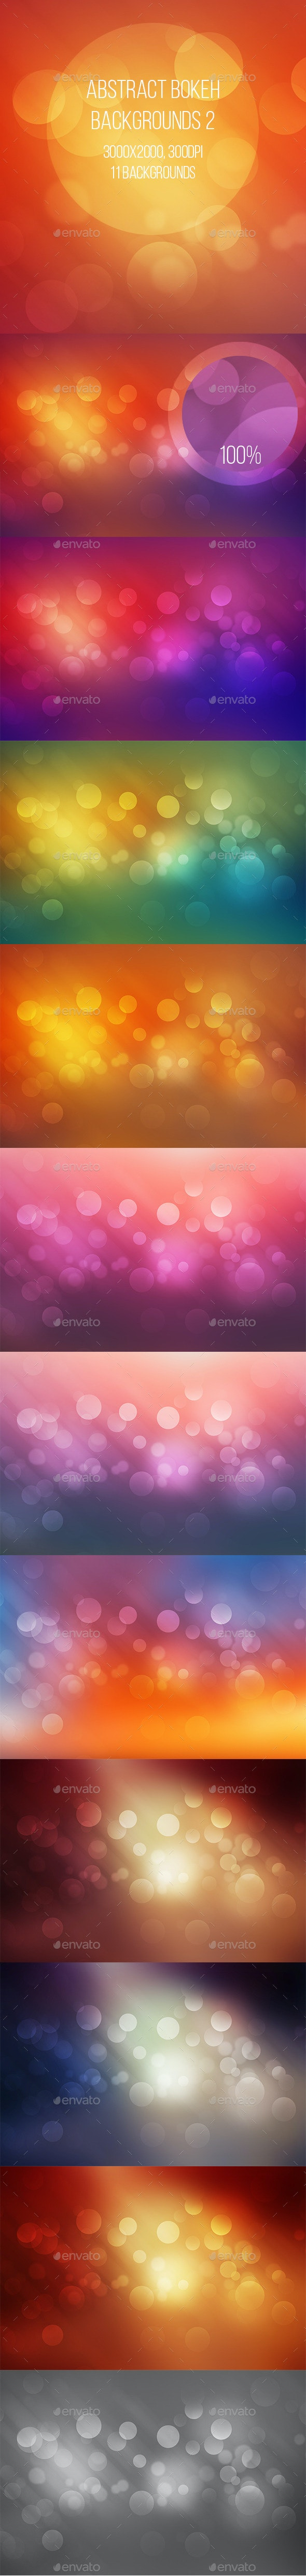 Abstract Bokeh Backgrounds 2